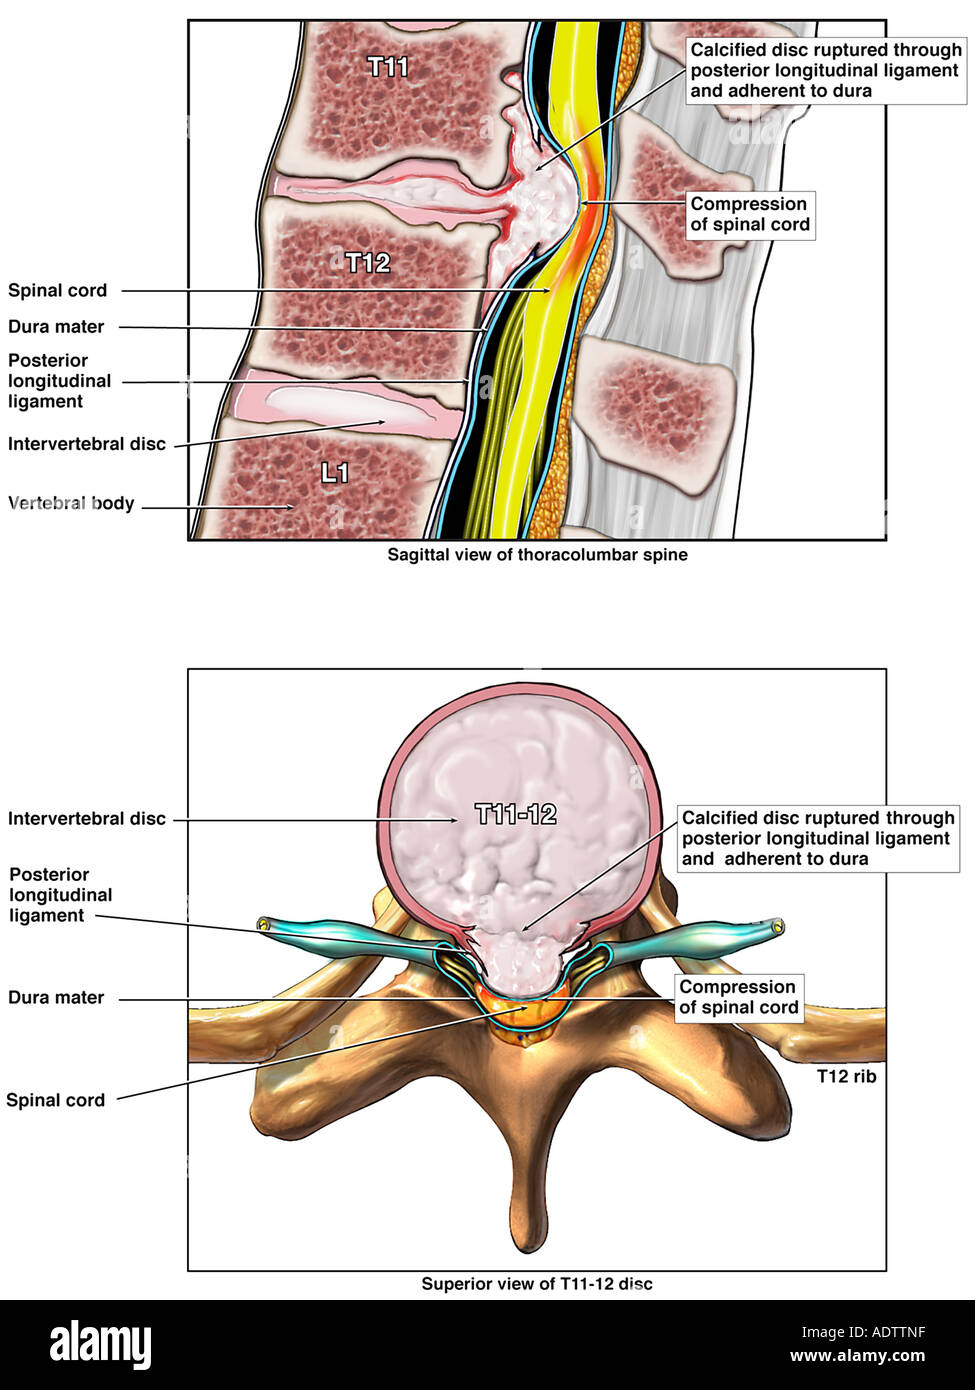 Rupture of T11-12 Disc with Severe Spinal Cord Compression - Stock Image